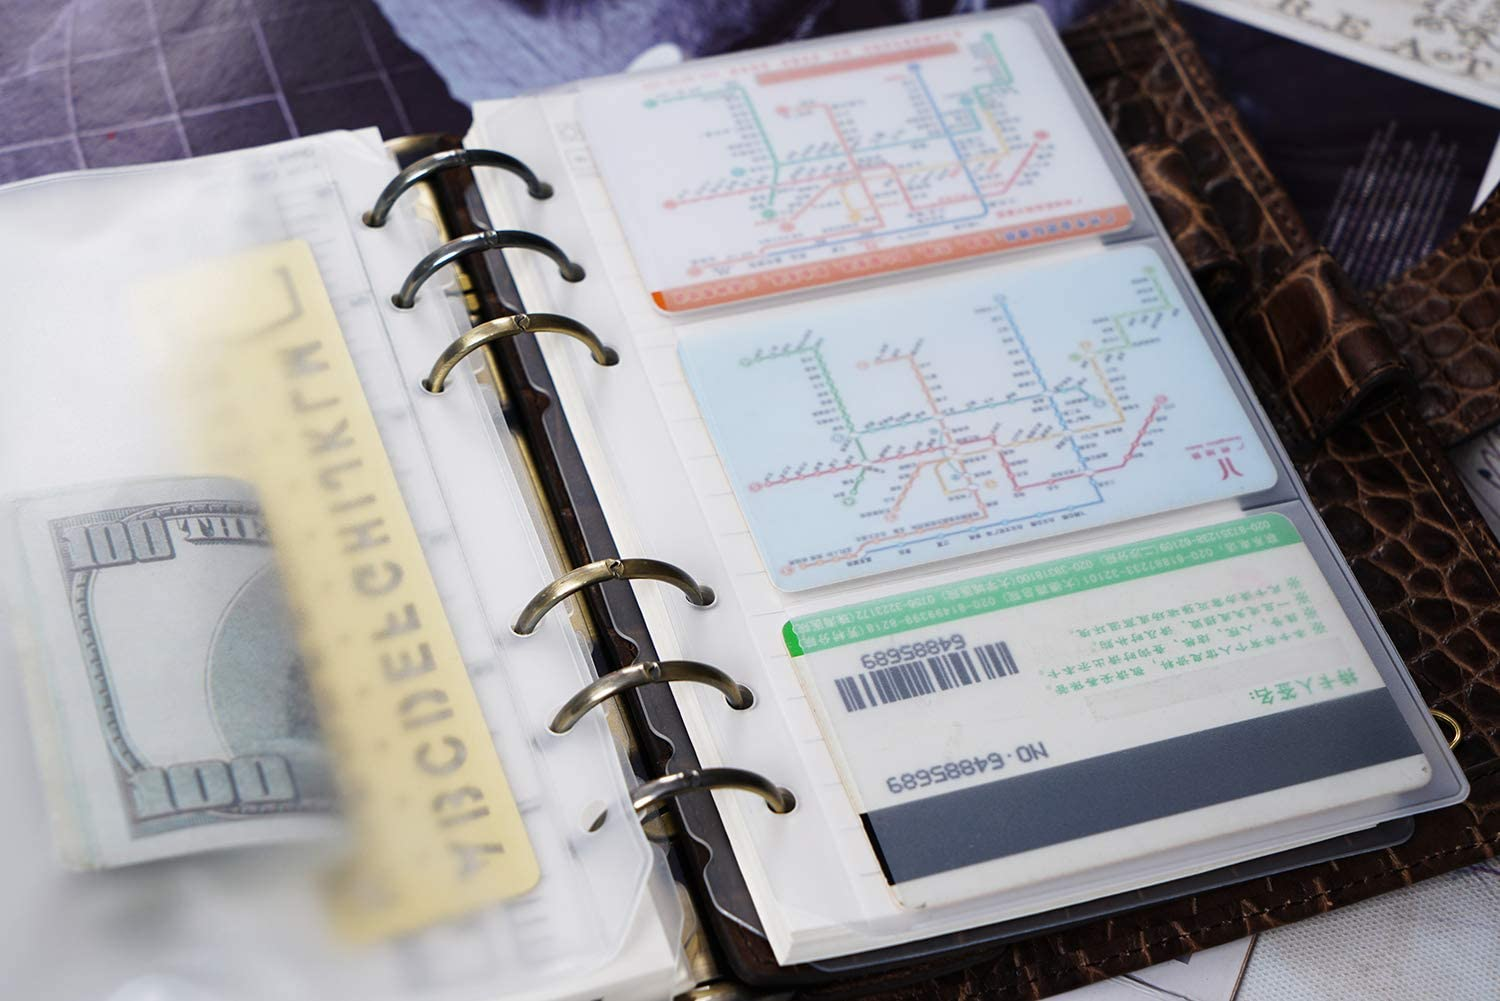 Moterm 2 PCs Page Lifter 1 PC PVC Storage Card Holder and 1 PC Zipper Bag for A7 Planner 1 PC Bookmark Ruler Transparent Separator